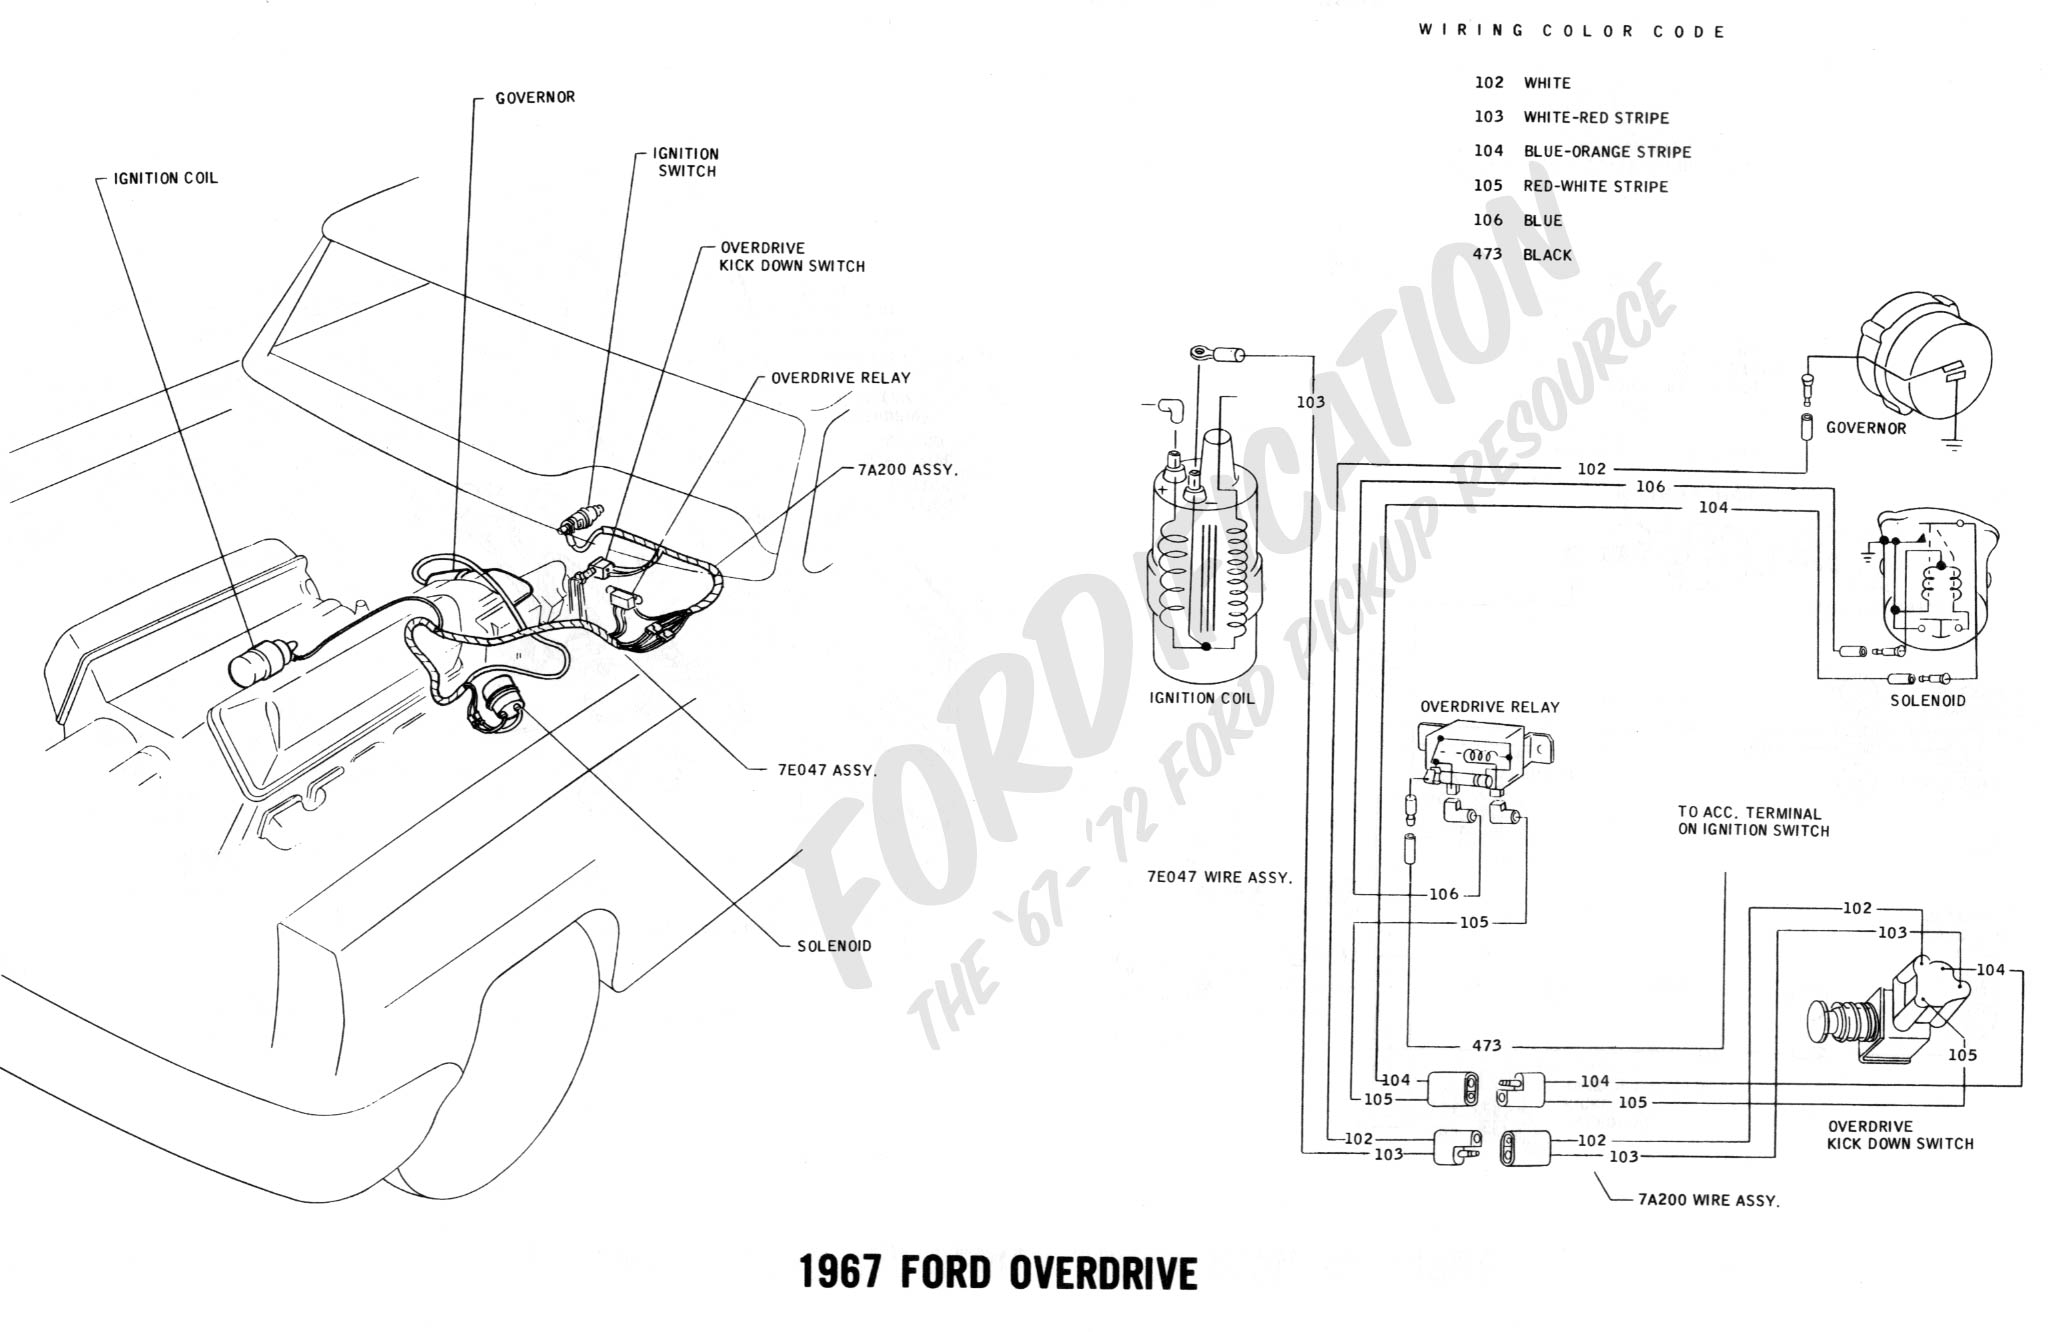 85 ford f 150 wiring diagram alternator    wiring       diagram    for 1985    ford       f       150       wiring     alternator    wiring       diagram    for 1985    ford       f       150       wiring